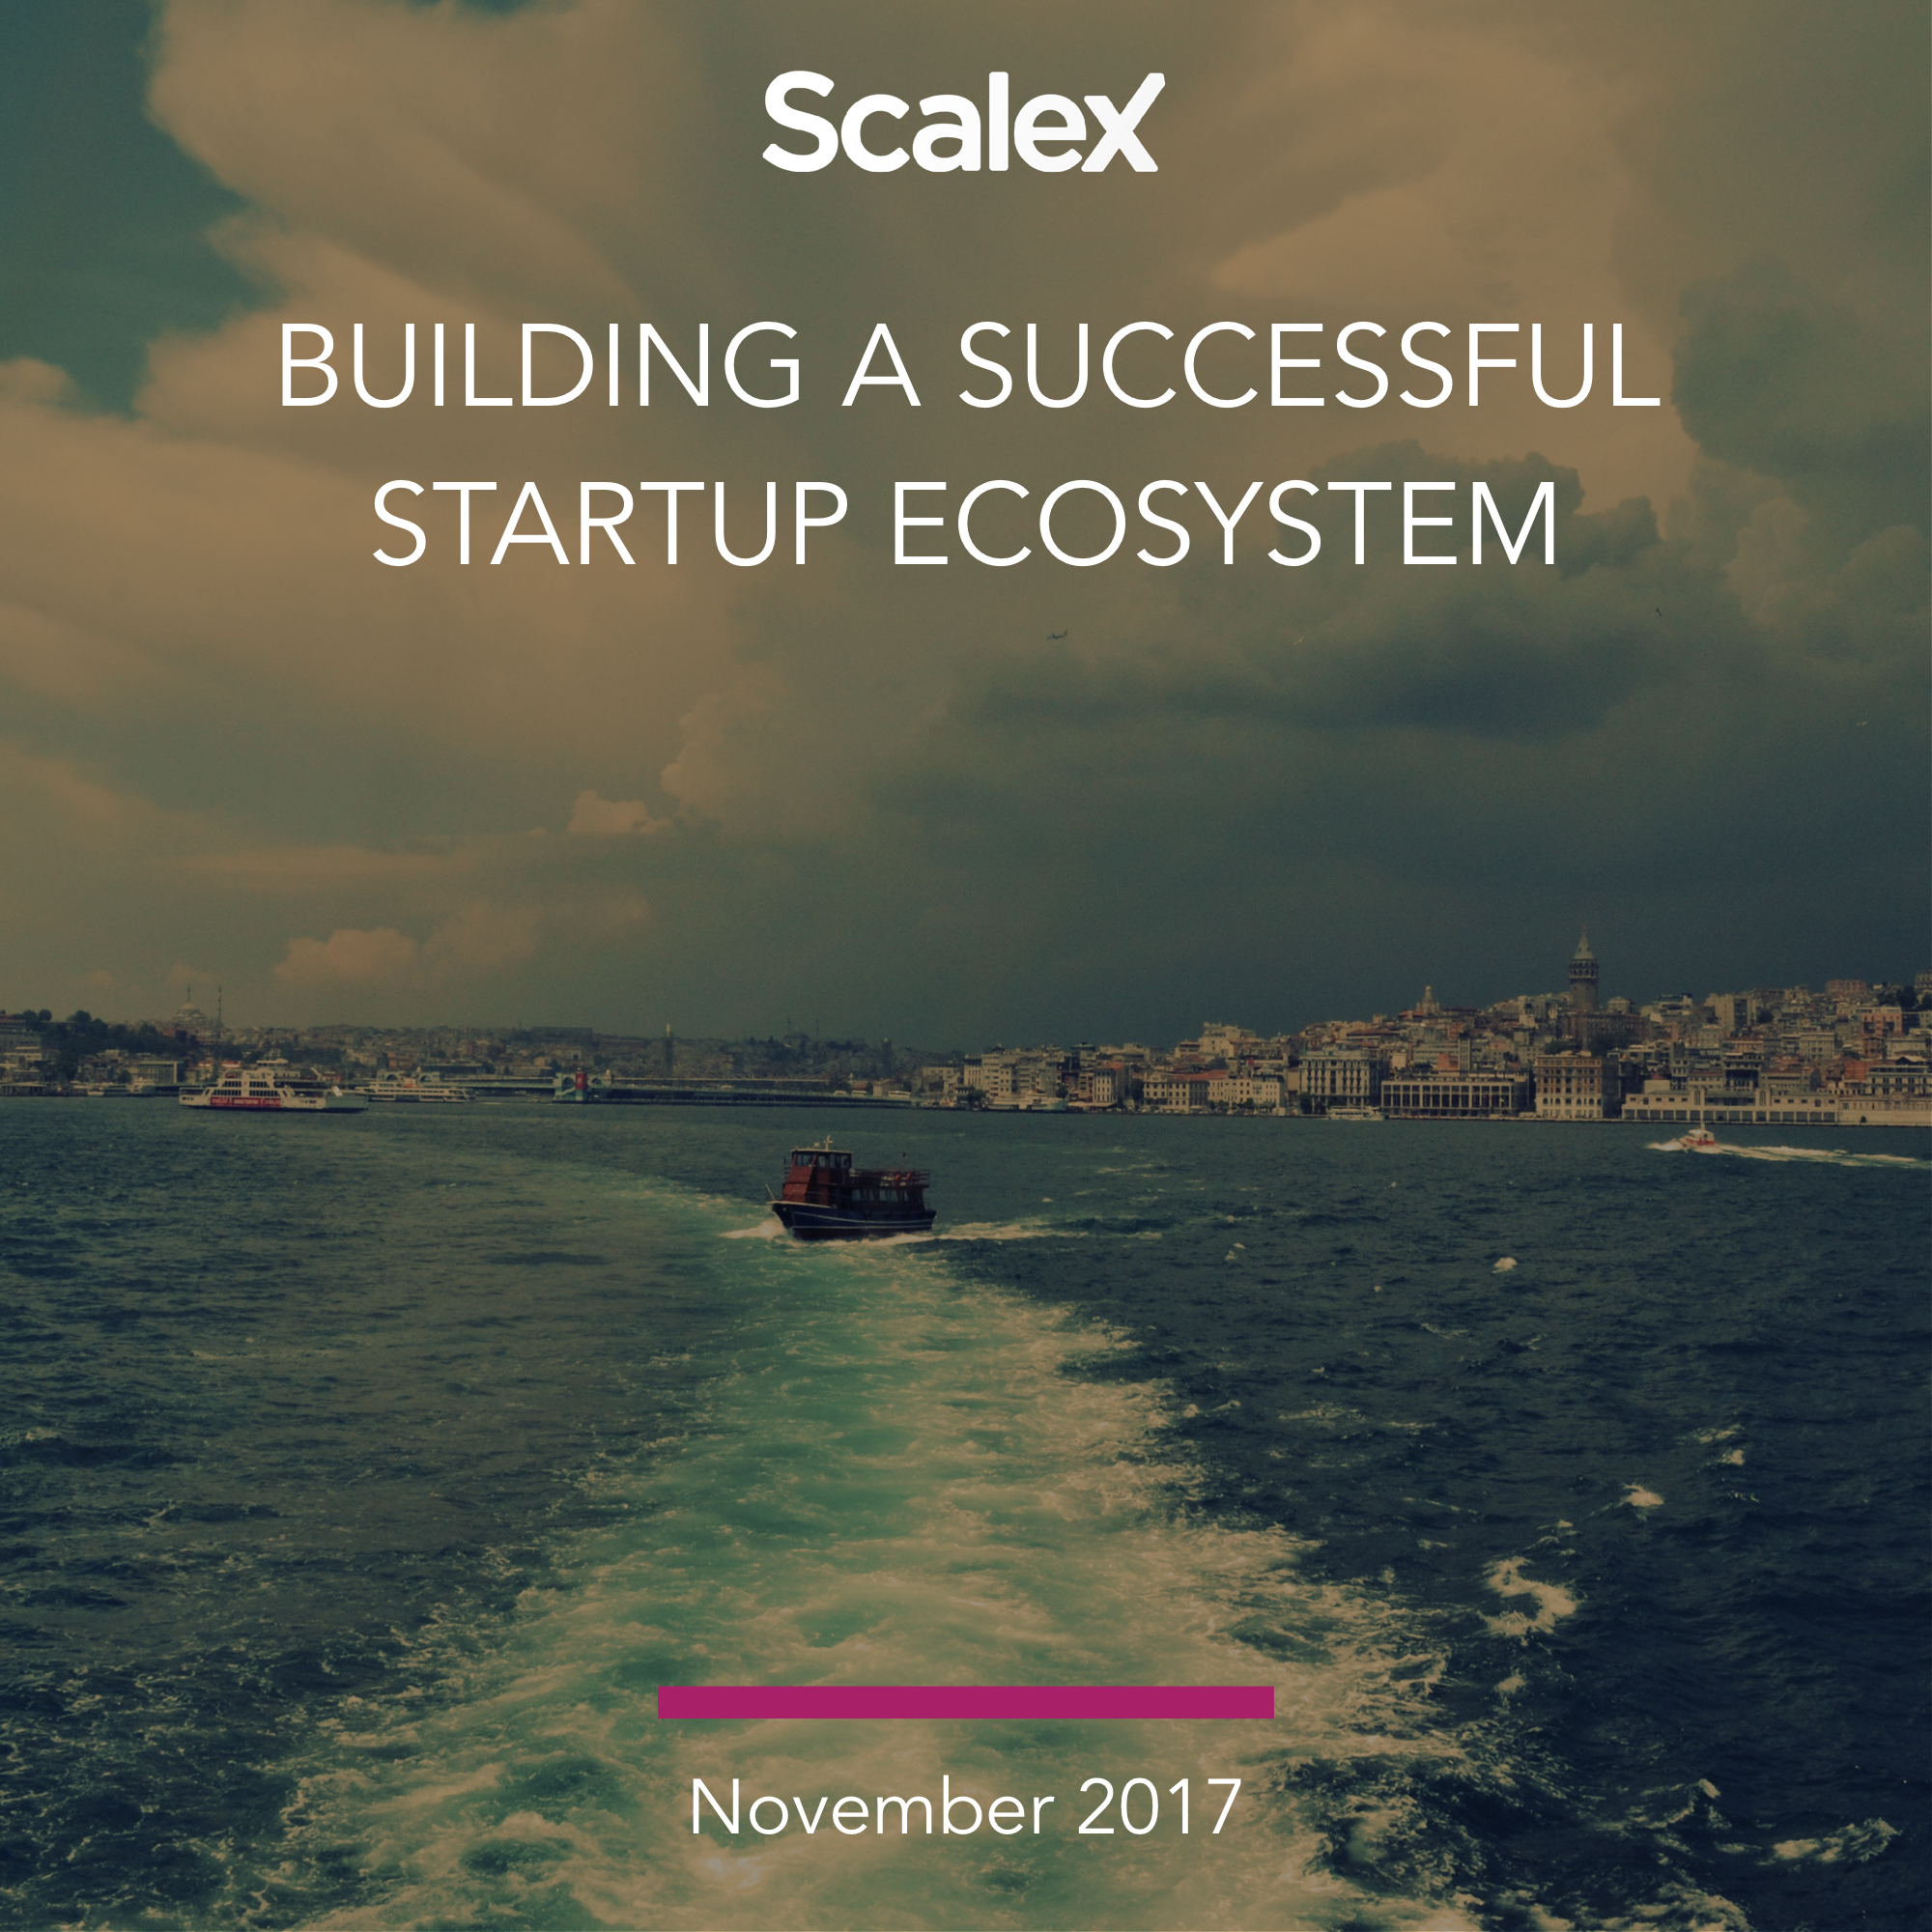 ScaleX_Building A Successful Startup Ecosystem_November 2017_final_cover.001.jpeg